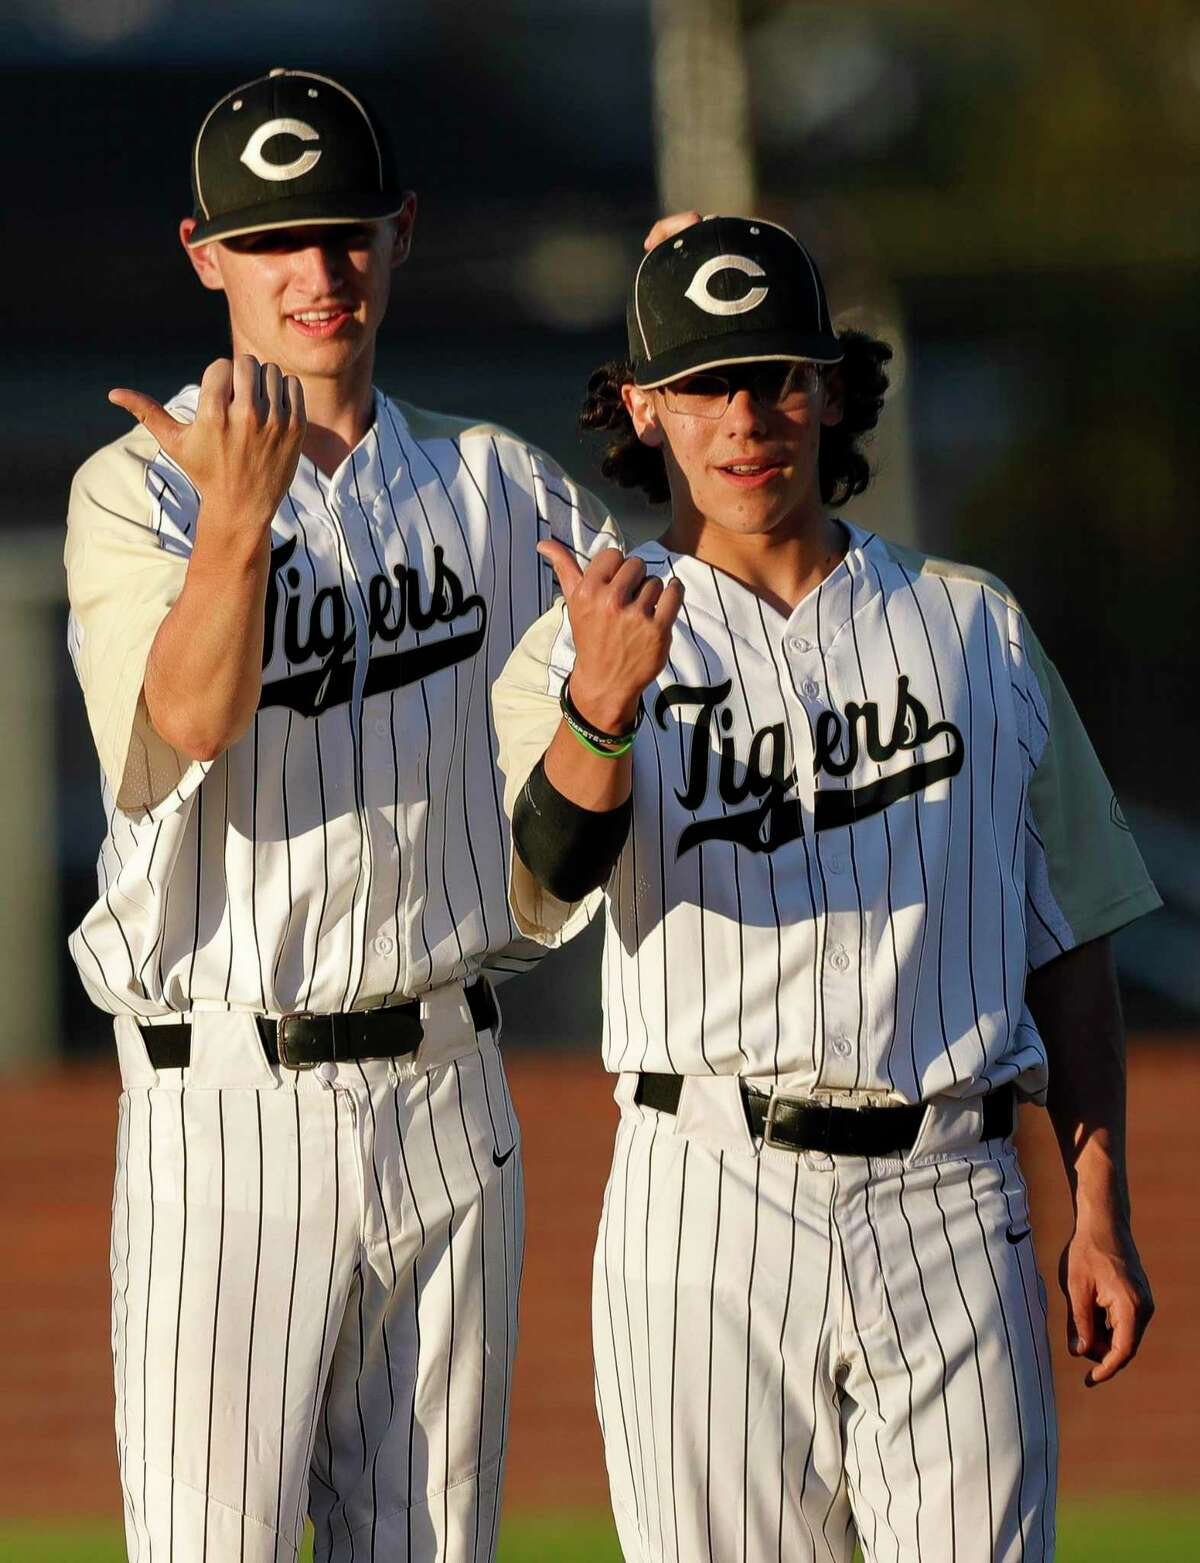 Conroe's Garet Cross, left, alongside Frankie Olivarez helps guide Brendan LaBarrge paints the first base line before a high school baseball game against The Heights during the Ferrell Classic at Conroe High School, Thursday, March 5, 2020, in Conroe.